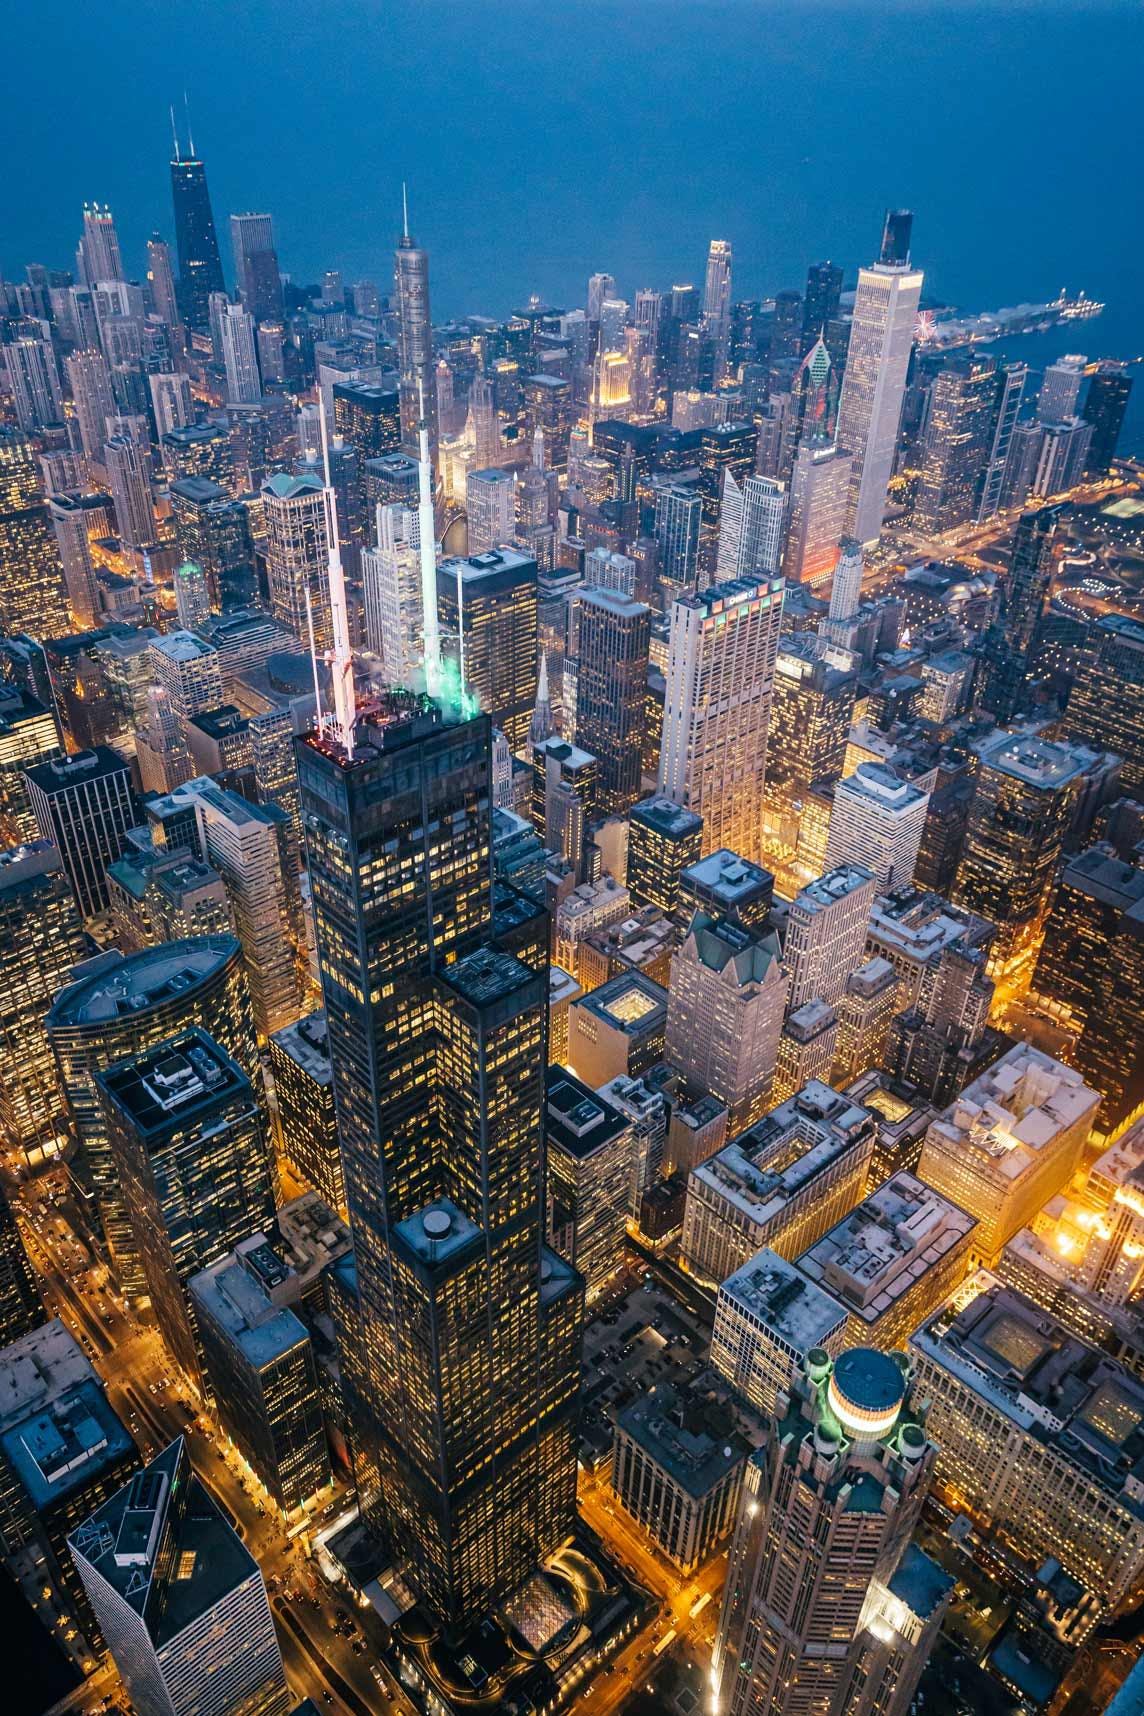 Willis Tower & the Chicago Skyline from Helicopter